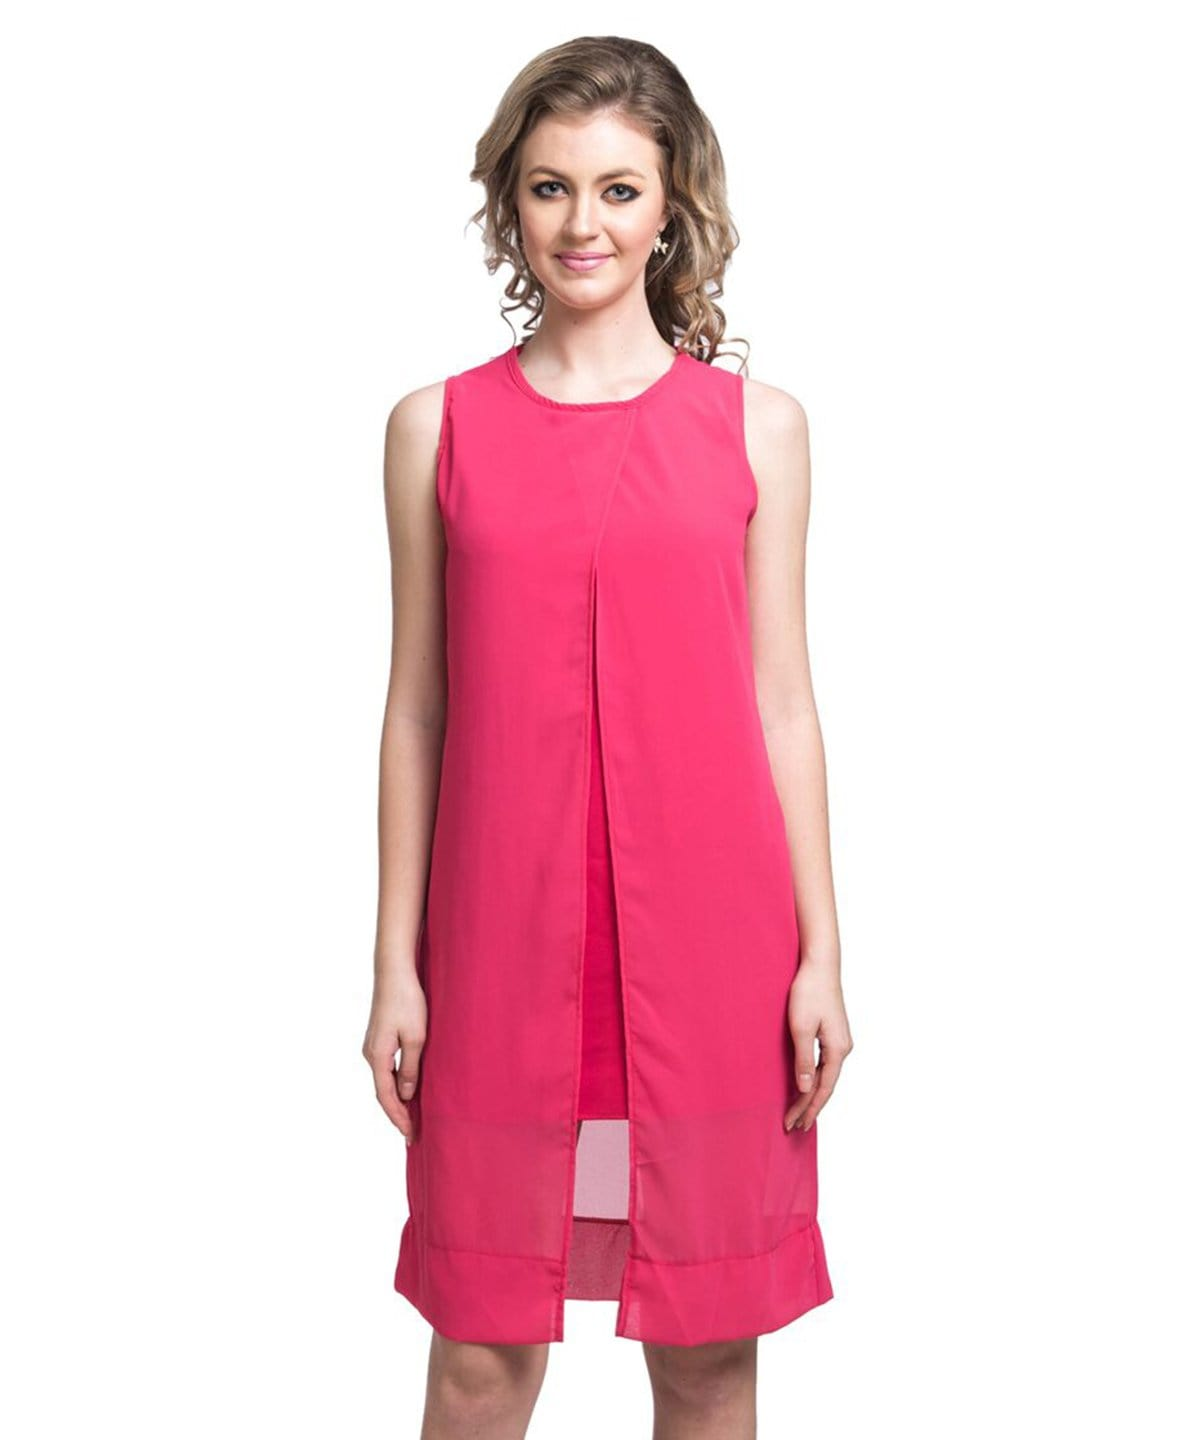 Solid Pink Casual Dress/Tunic